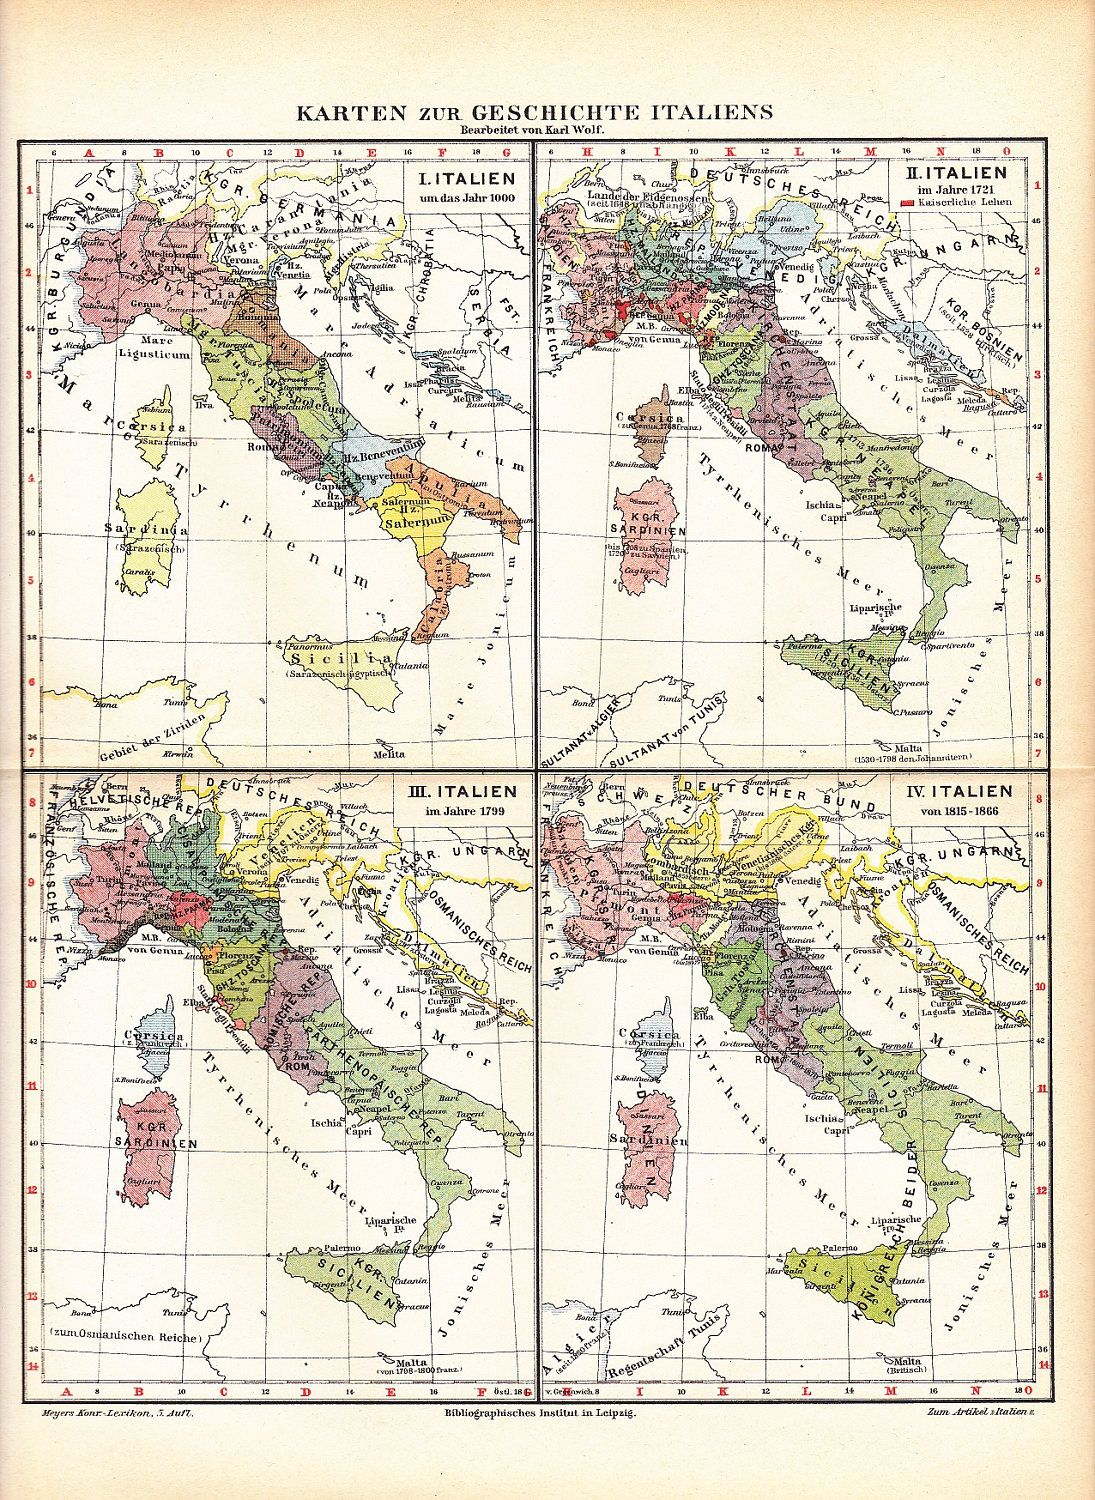 1895 Territory Of Italy From 1000 A D Until 1866 Historical